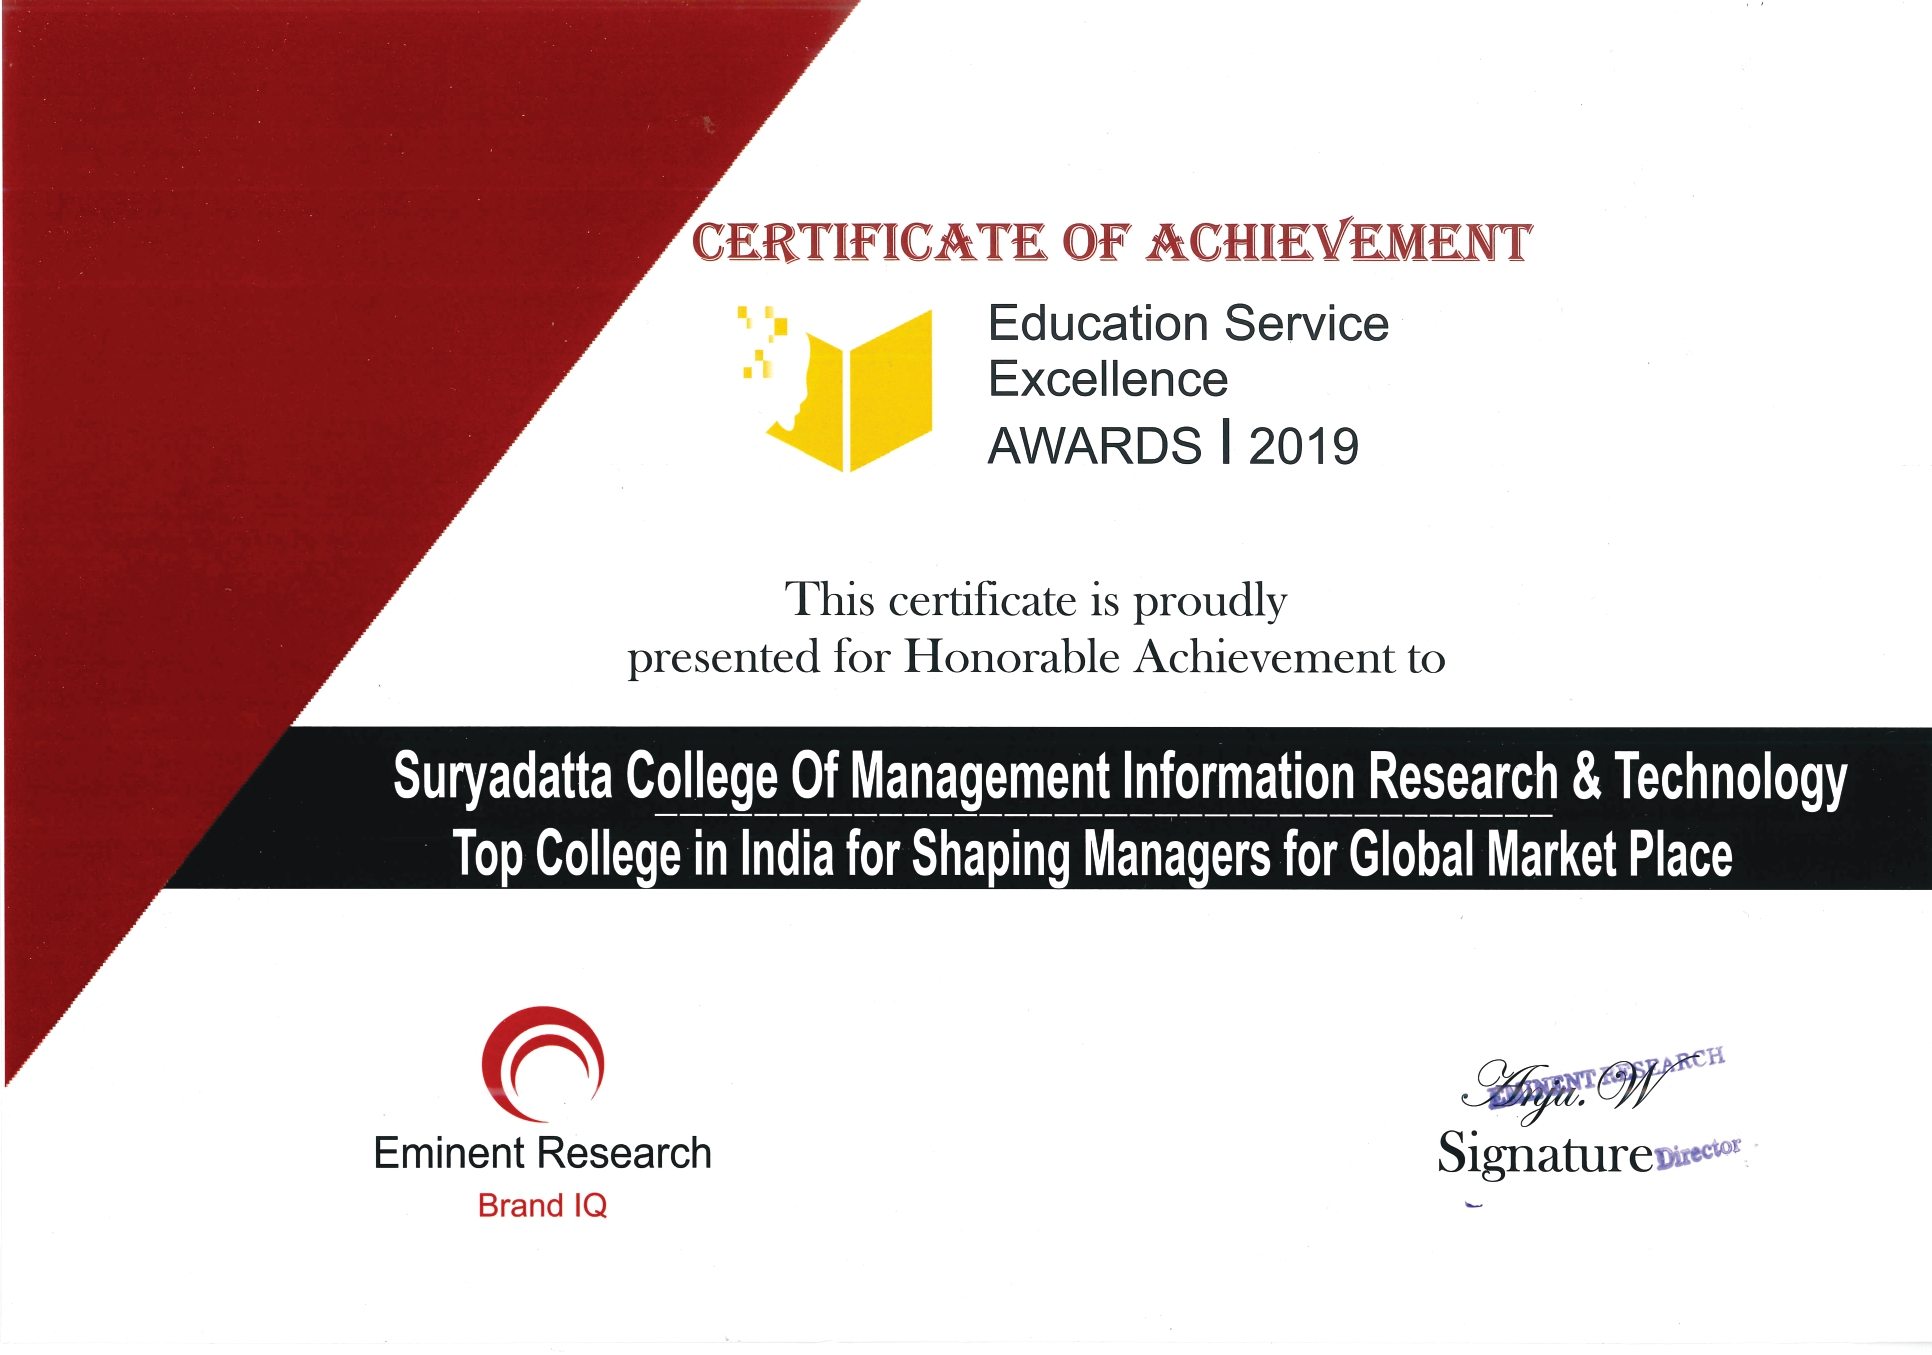 SCMIRT Education Service Excellence Awards 2019 Eminent Research Brand IQ page 0001